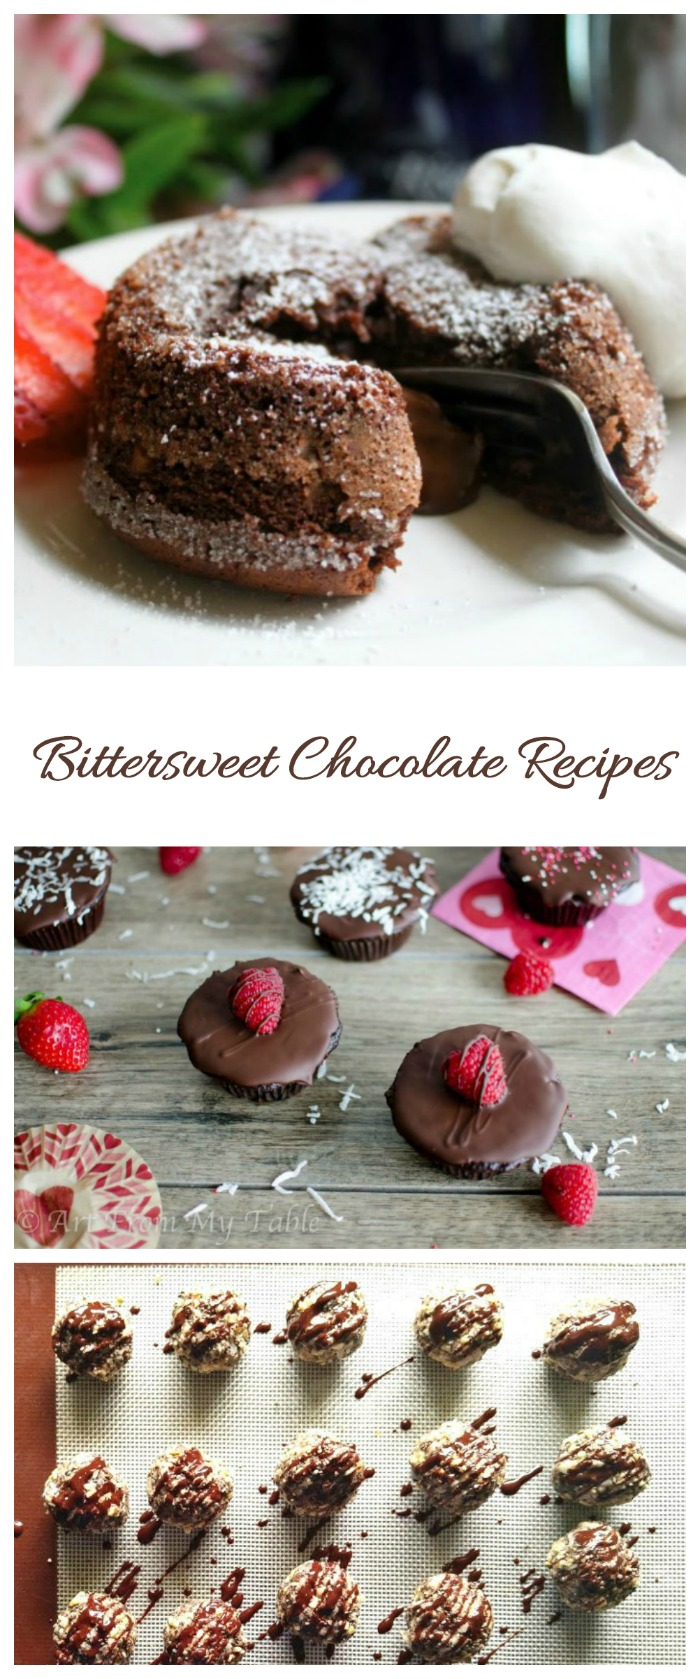 Bittersweet Chocolate has a dark and intense flavor. These recipes showcase it well.